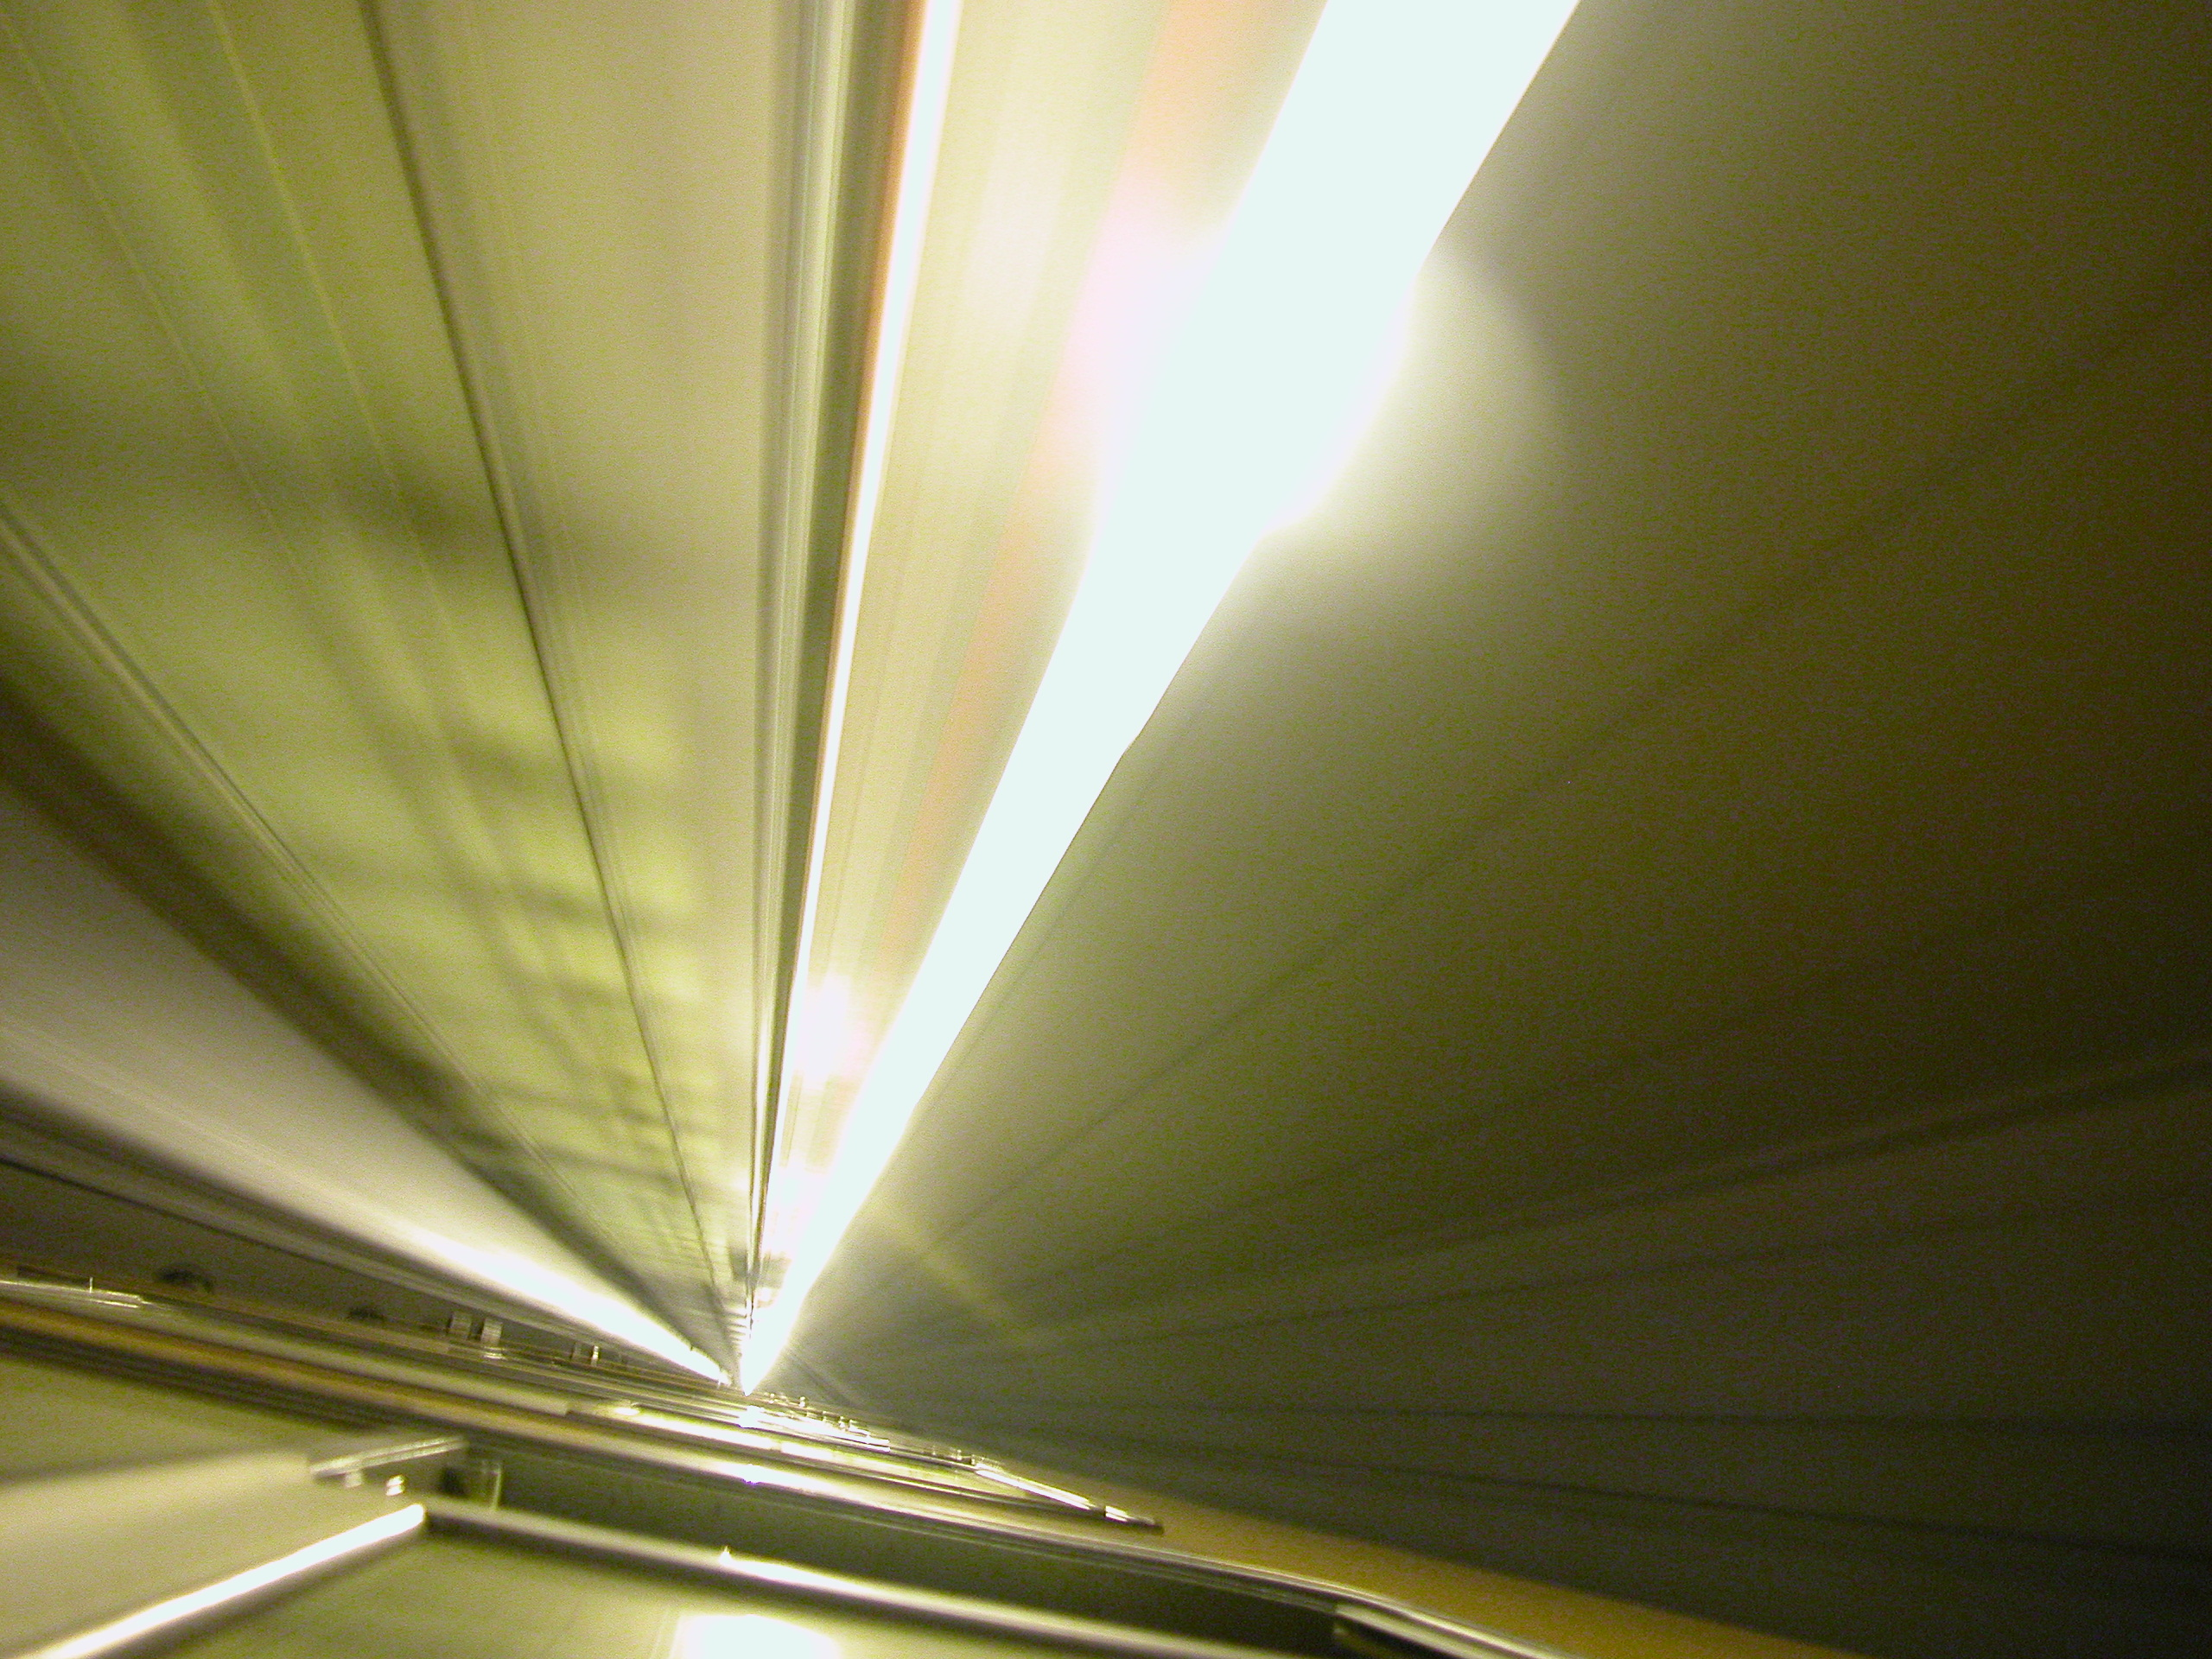 inside of a train light noise beams speed